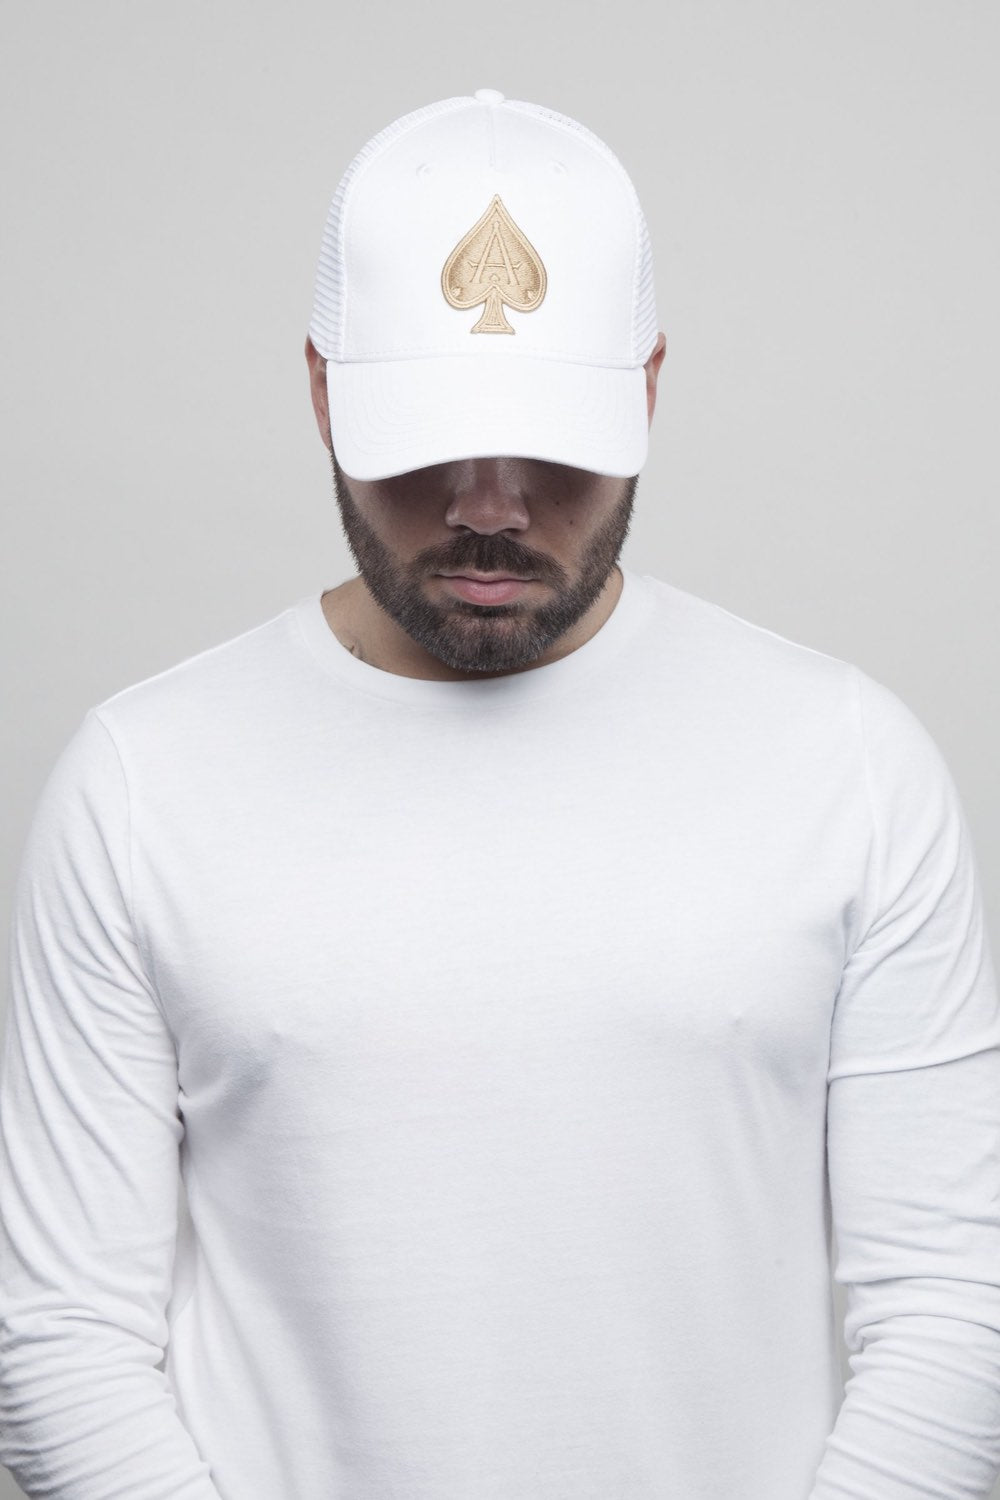 Ace Vestiti Mesh Trucker Cap - White/Gold